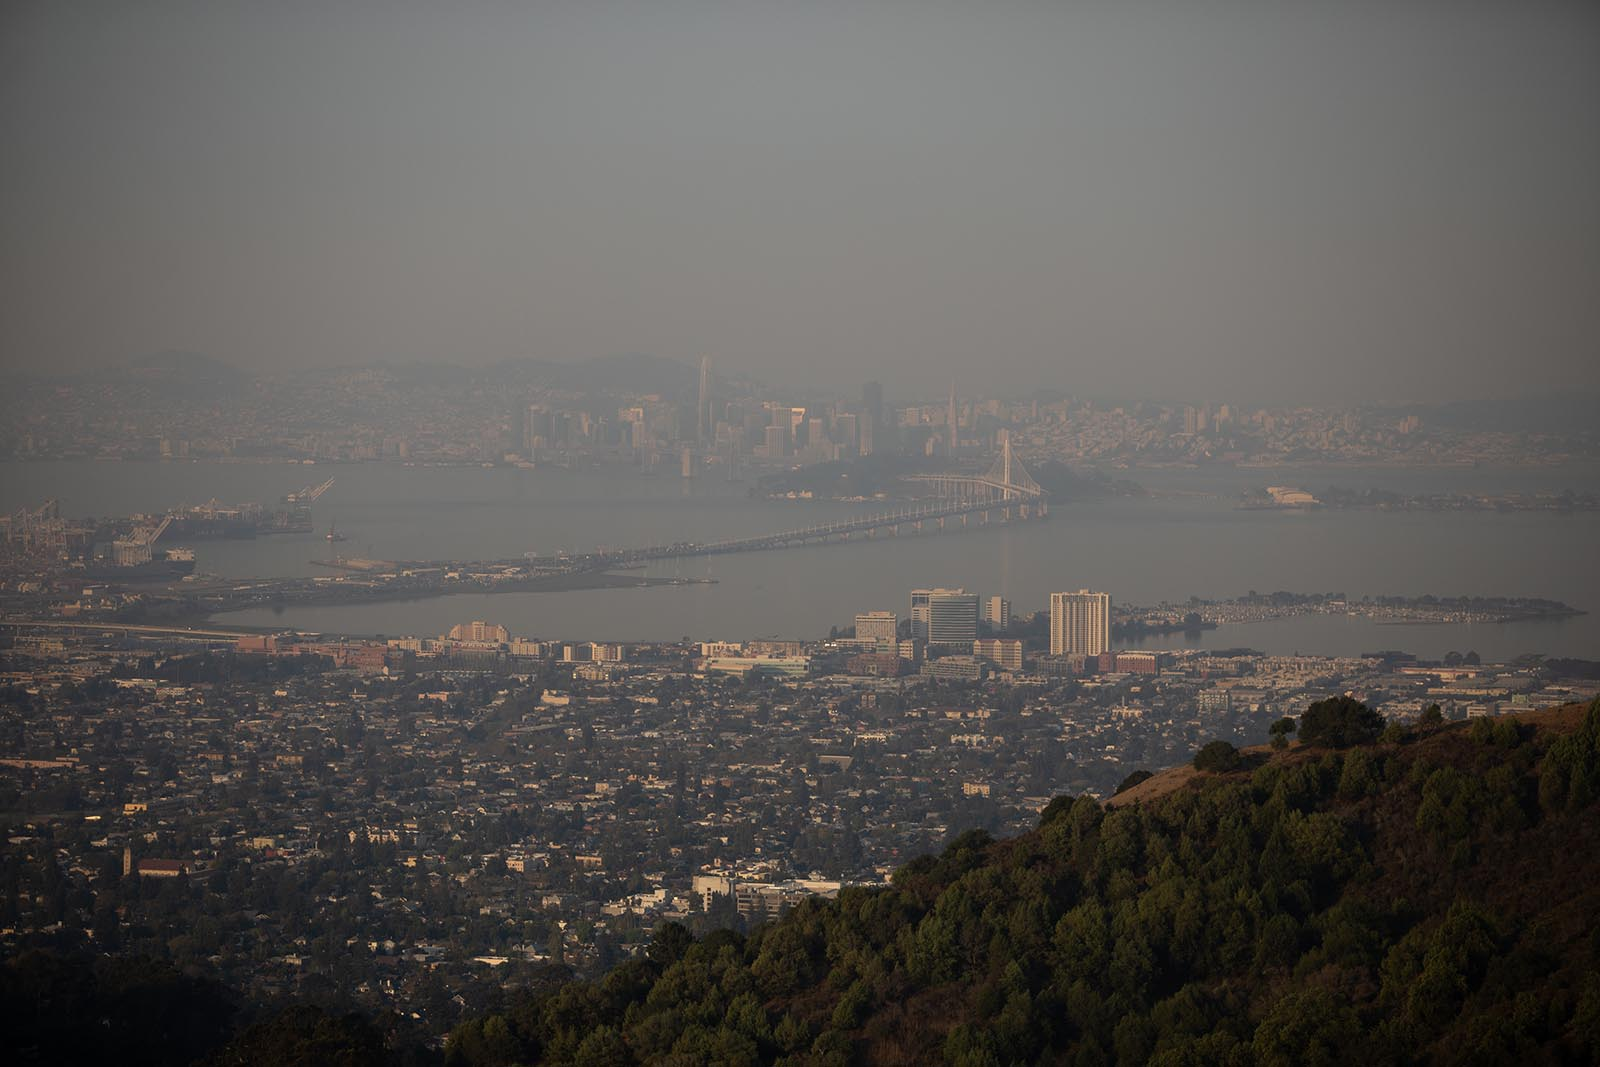 Smoke from wildfires fills the air over the San Francisco and Oakland skylines as seen from Berkeley, California, on Monday, September 28.